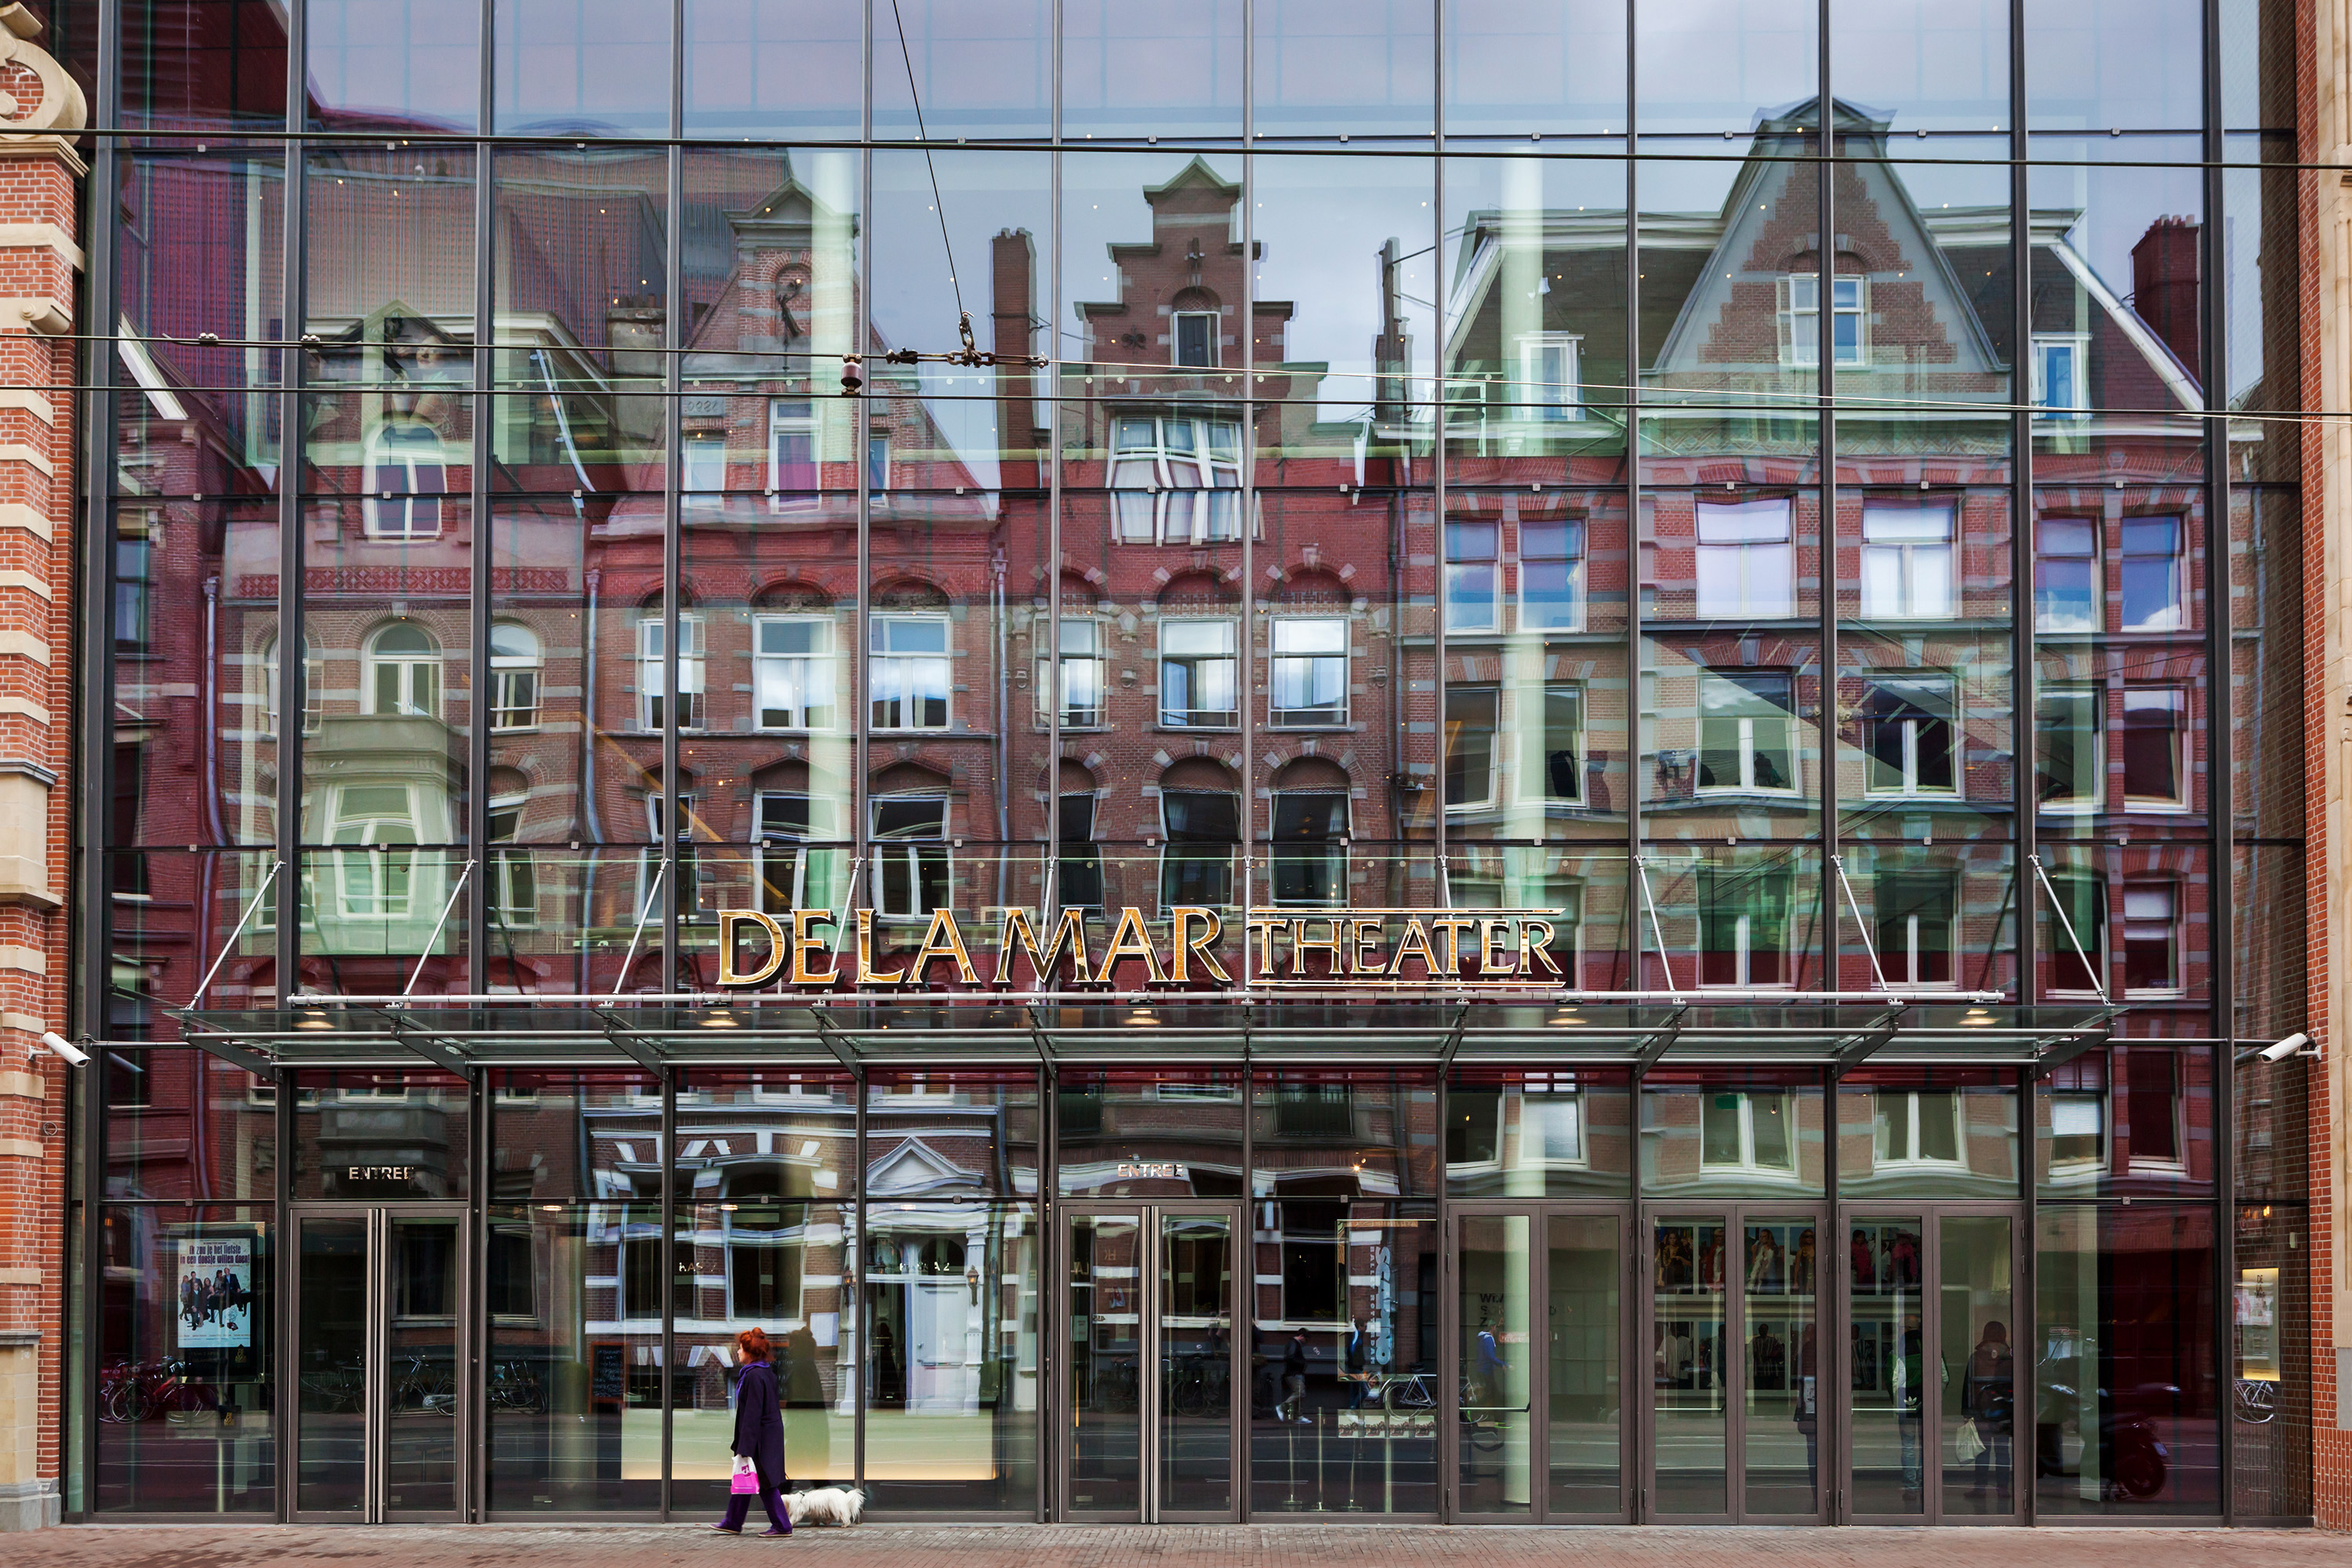 DeLaMar theater Amsterdam in opdracht van Glasdesign